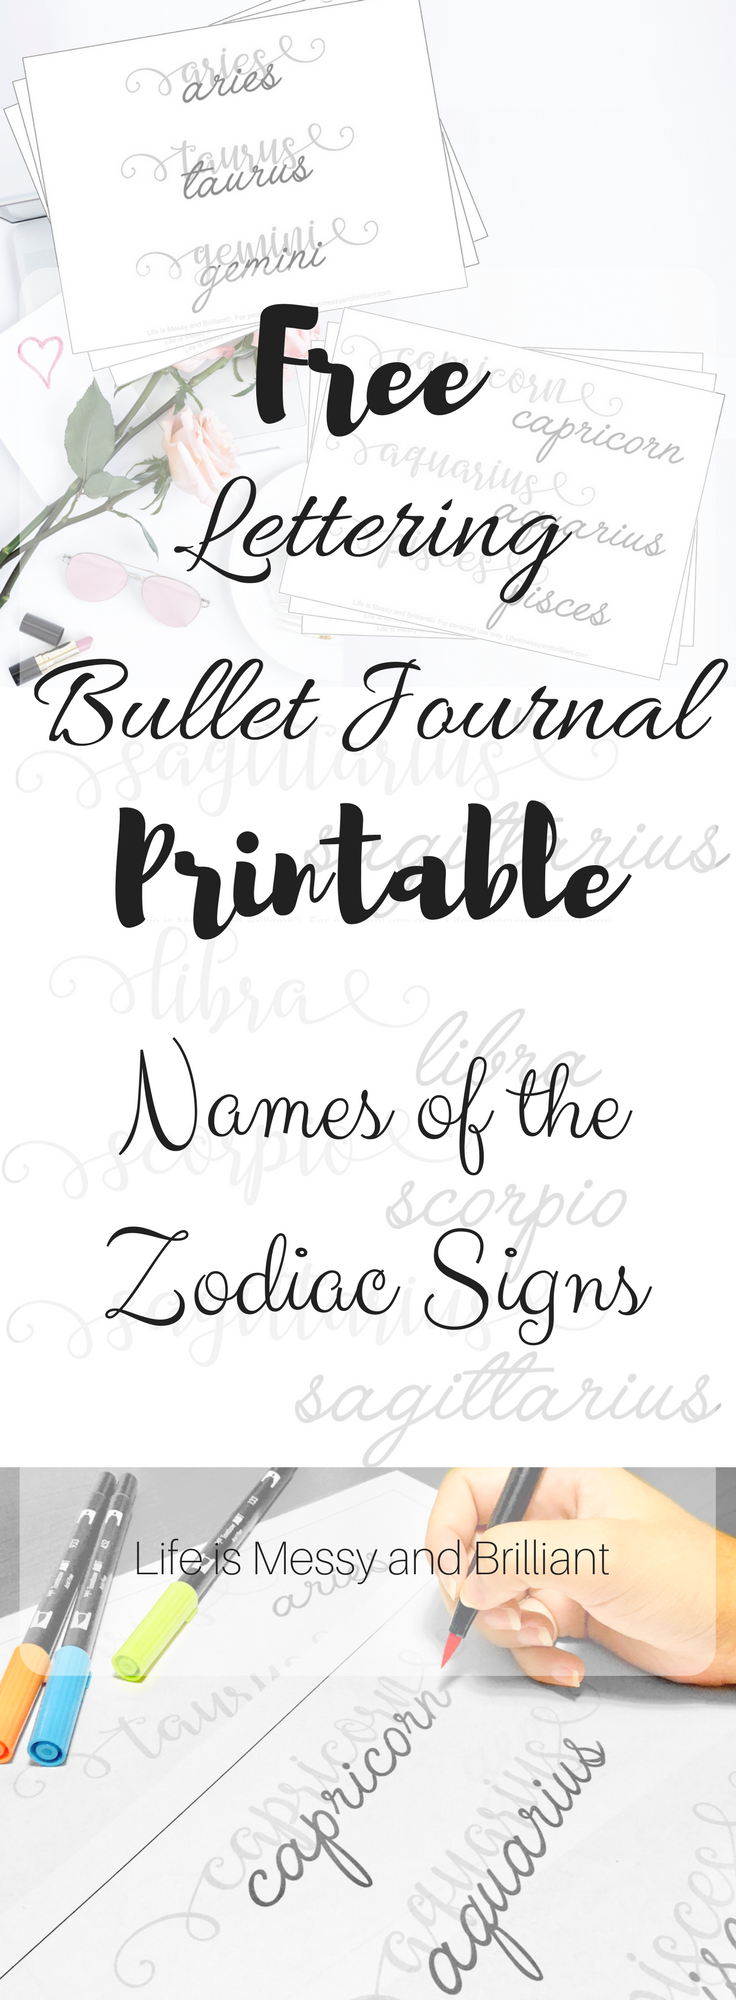 Predownload: Free Names Of The Zodiac Signs Lettering Printable Hand Lettering Worksheet Hand Lettering Practice Sheets Hand Lettering Printables [ 2000 x 736 Pixel ]